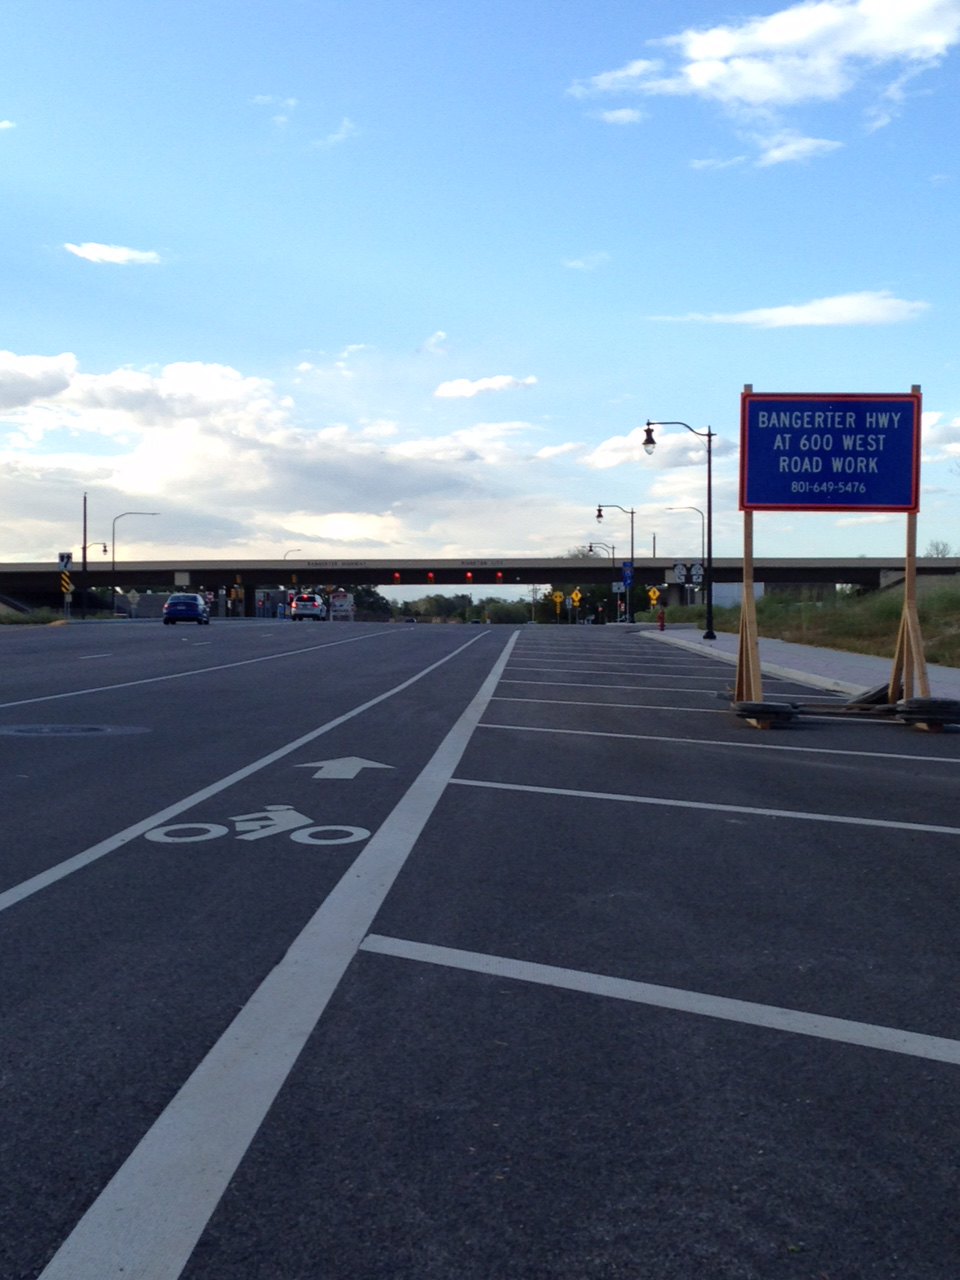 Redwood Road is part of the Wasatch Front Regional Council's Bicycle Priority Network. This section, south of Bangerter Highway has bike lanes. UDOT is proposing to remove lanes from 10440 S to 12600 S. Photo by Lisa Hazel